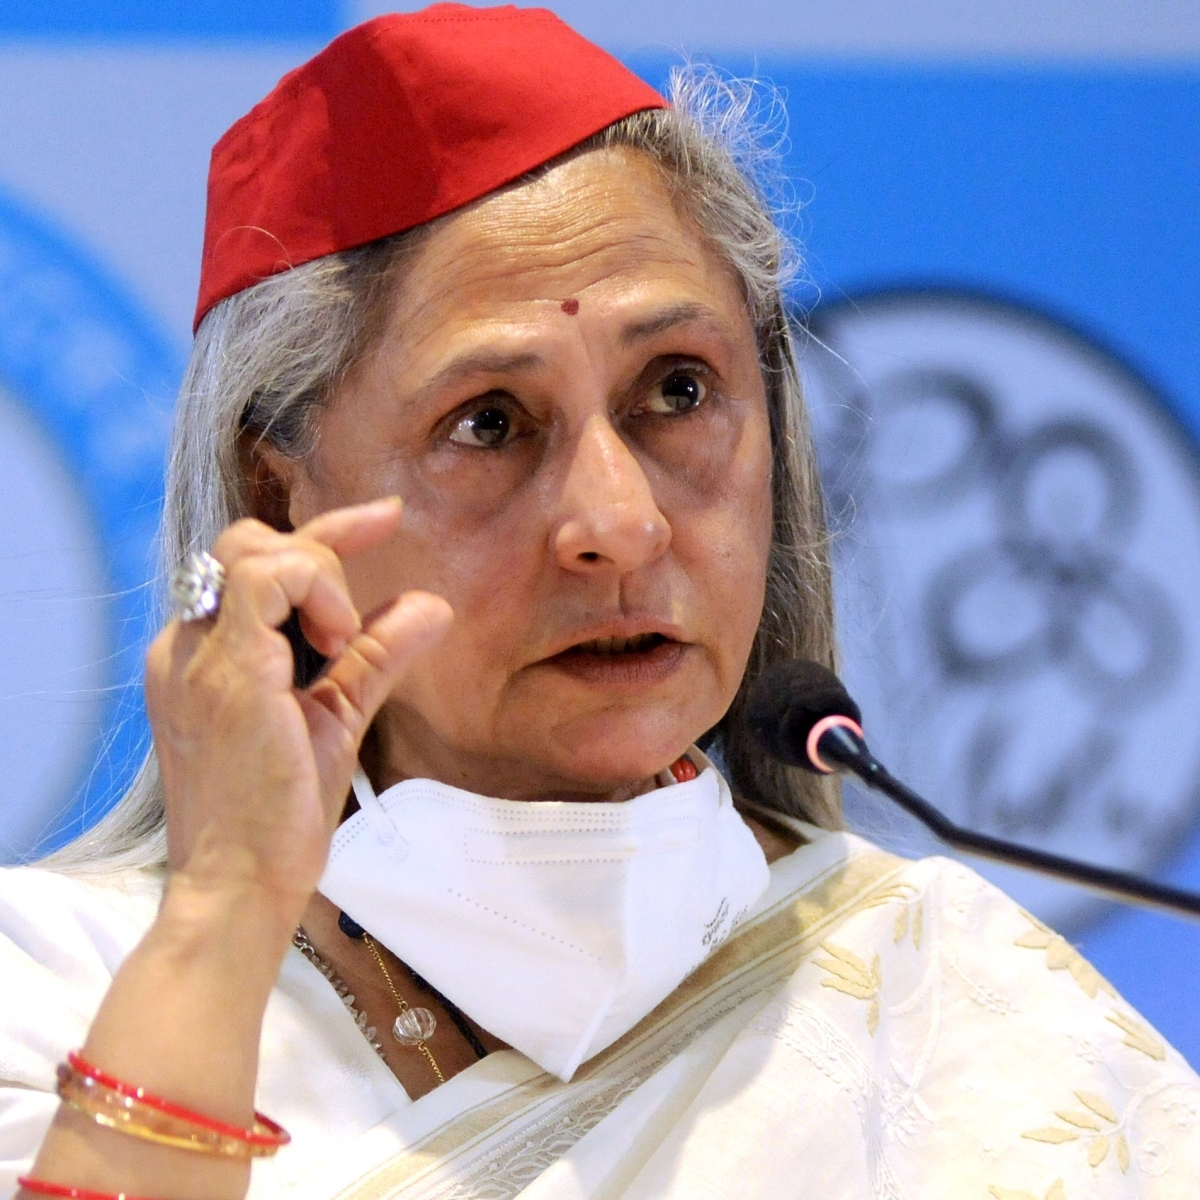 'Where is Jaya Bachchan now?': Actor-politician brutally trolled amid West Bengal violence